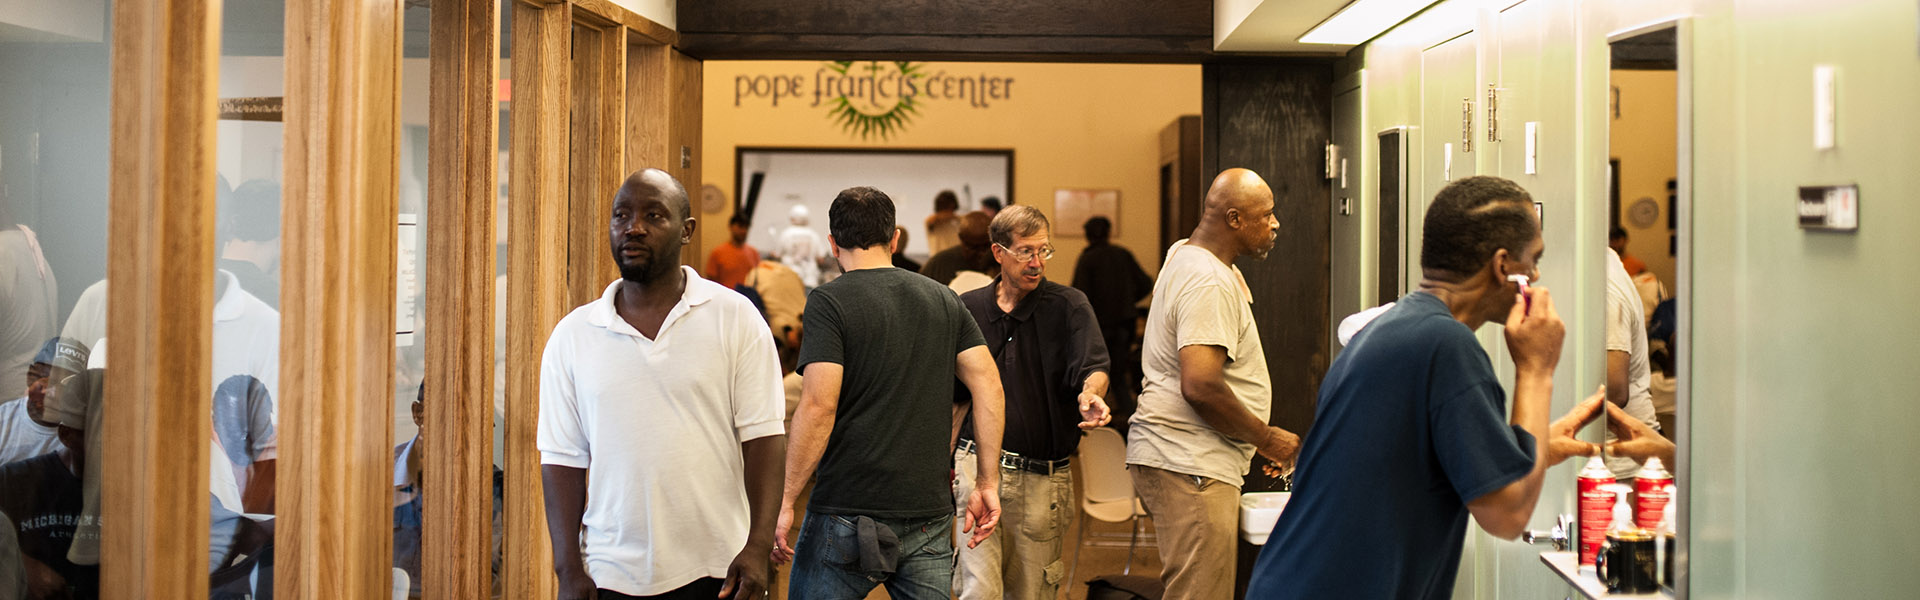 Pope Francis Center: serving those who are homeless in Detroit